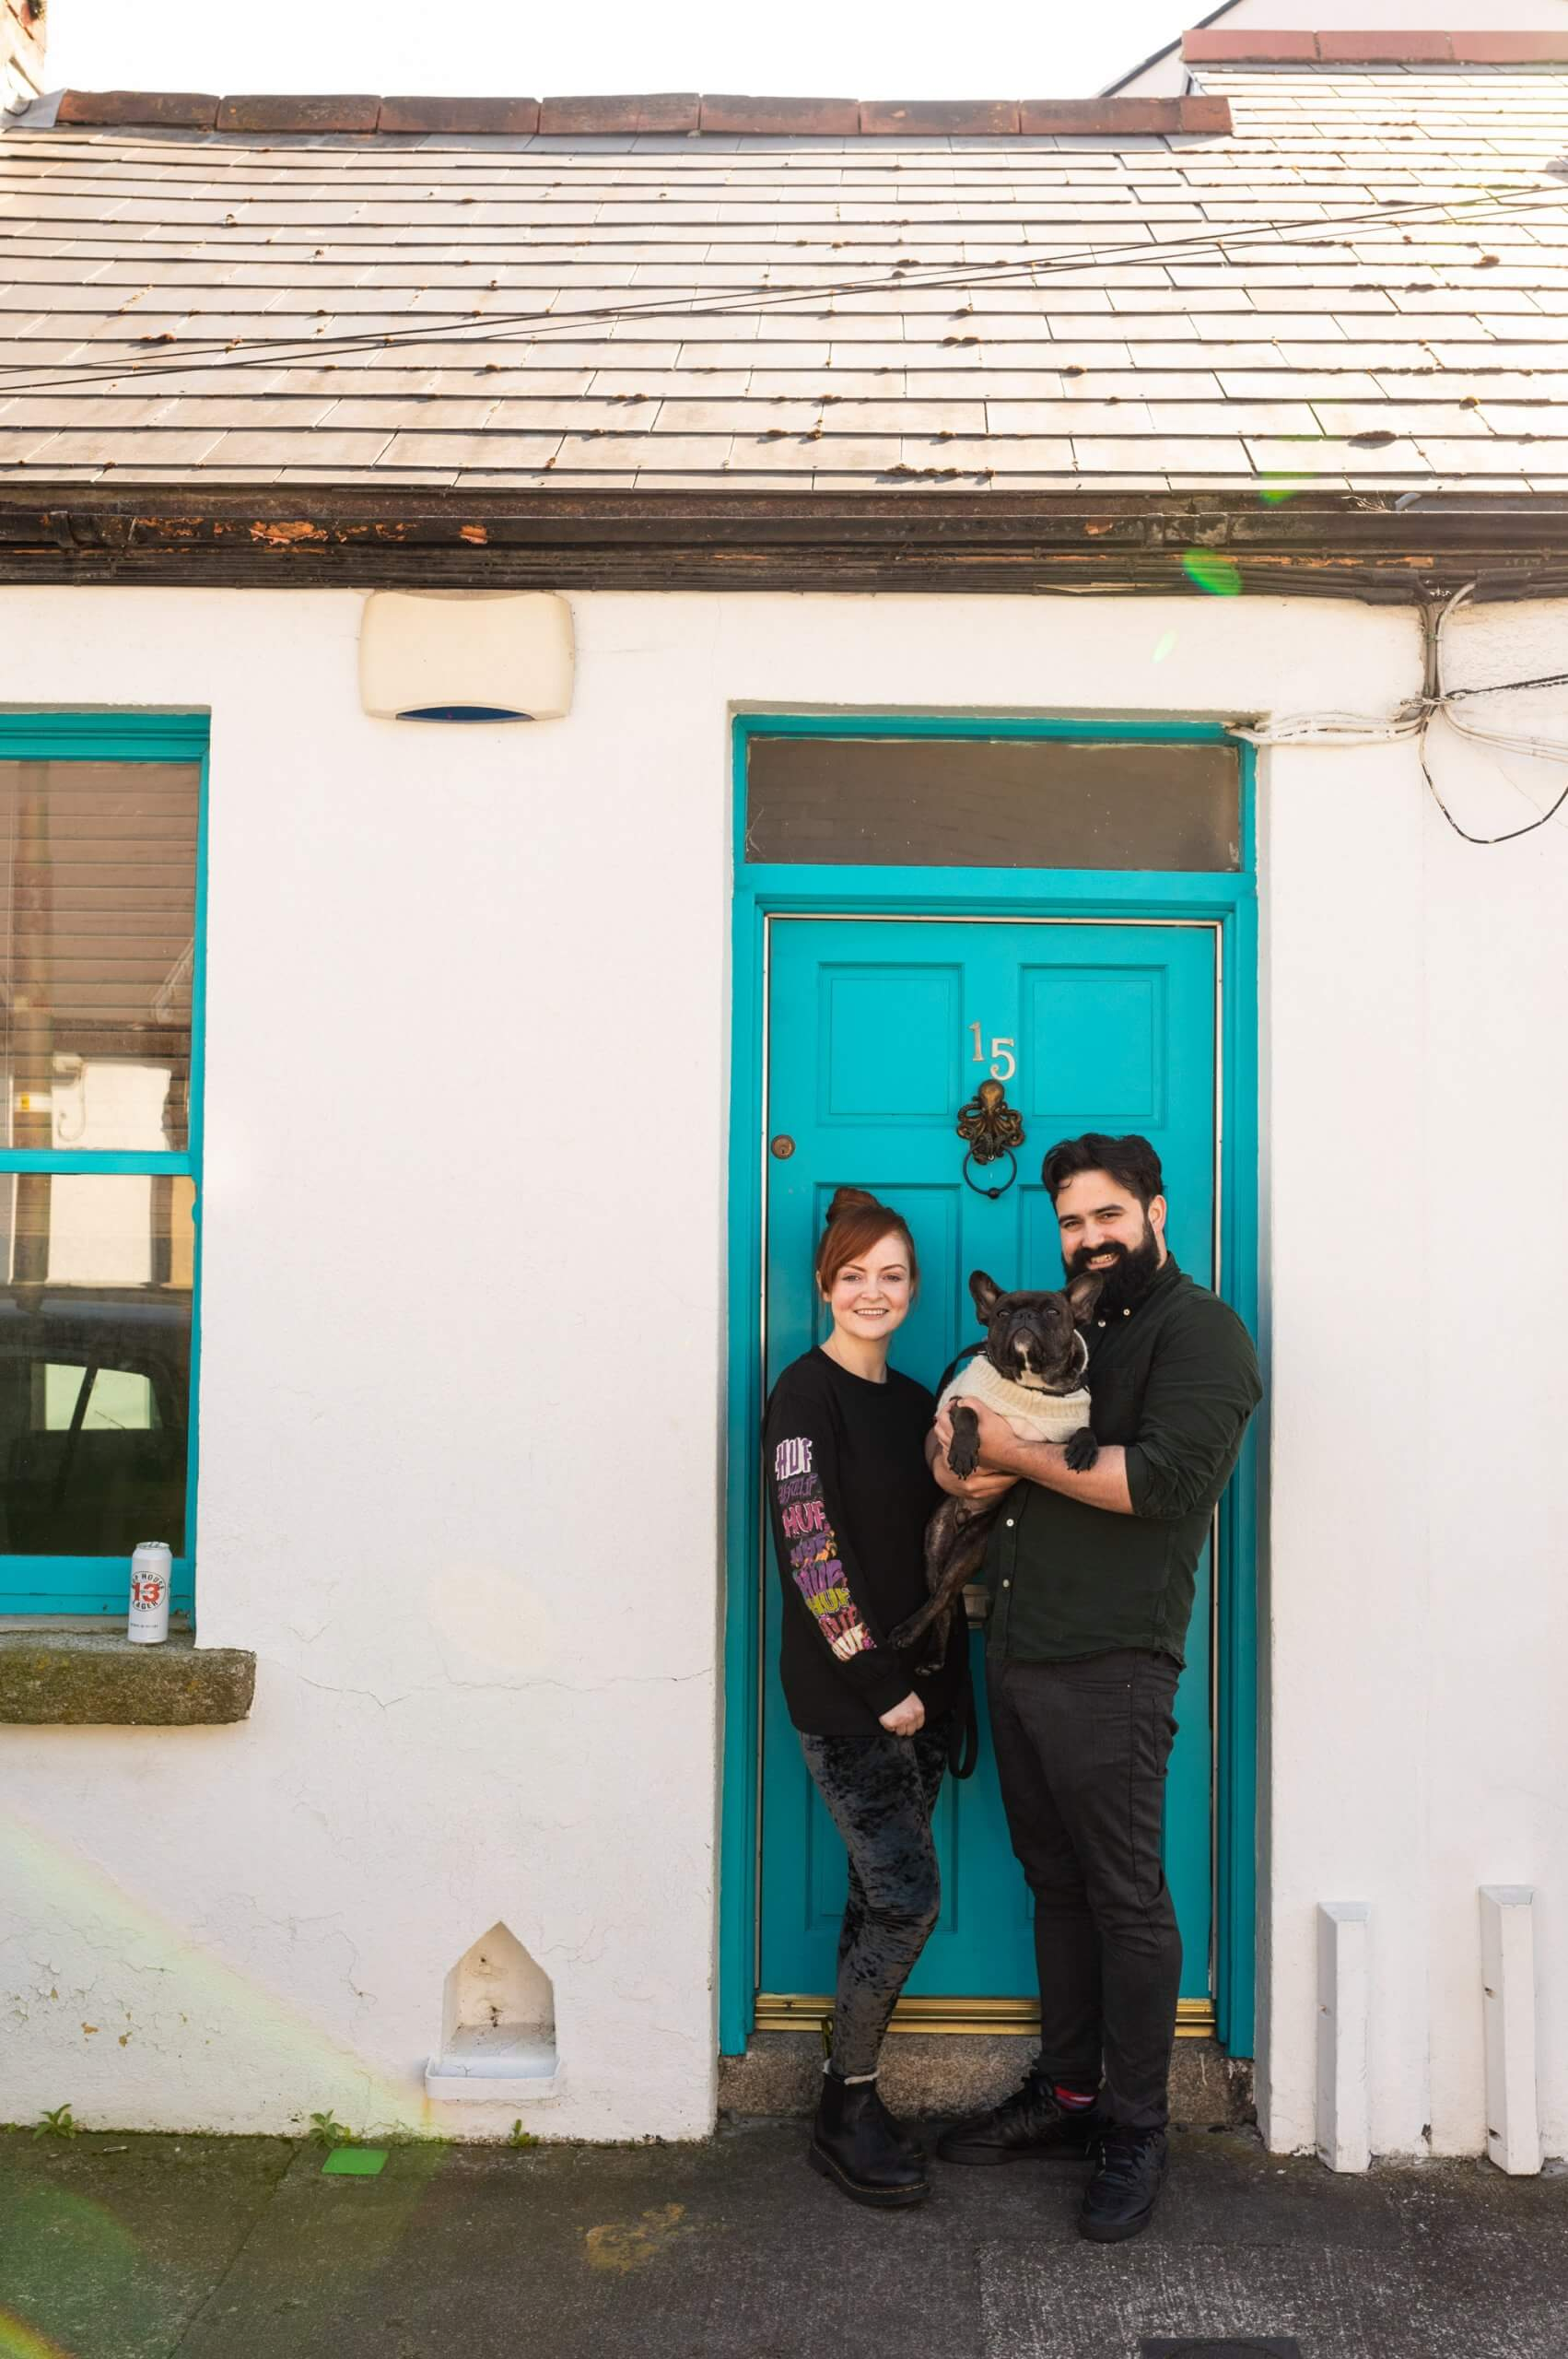 A couple and their dog pose at their front door